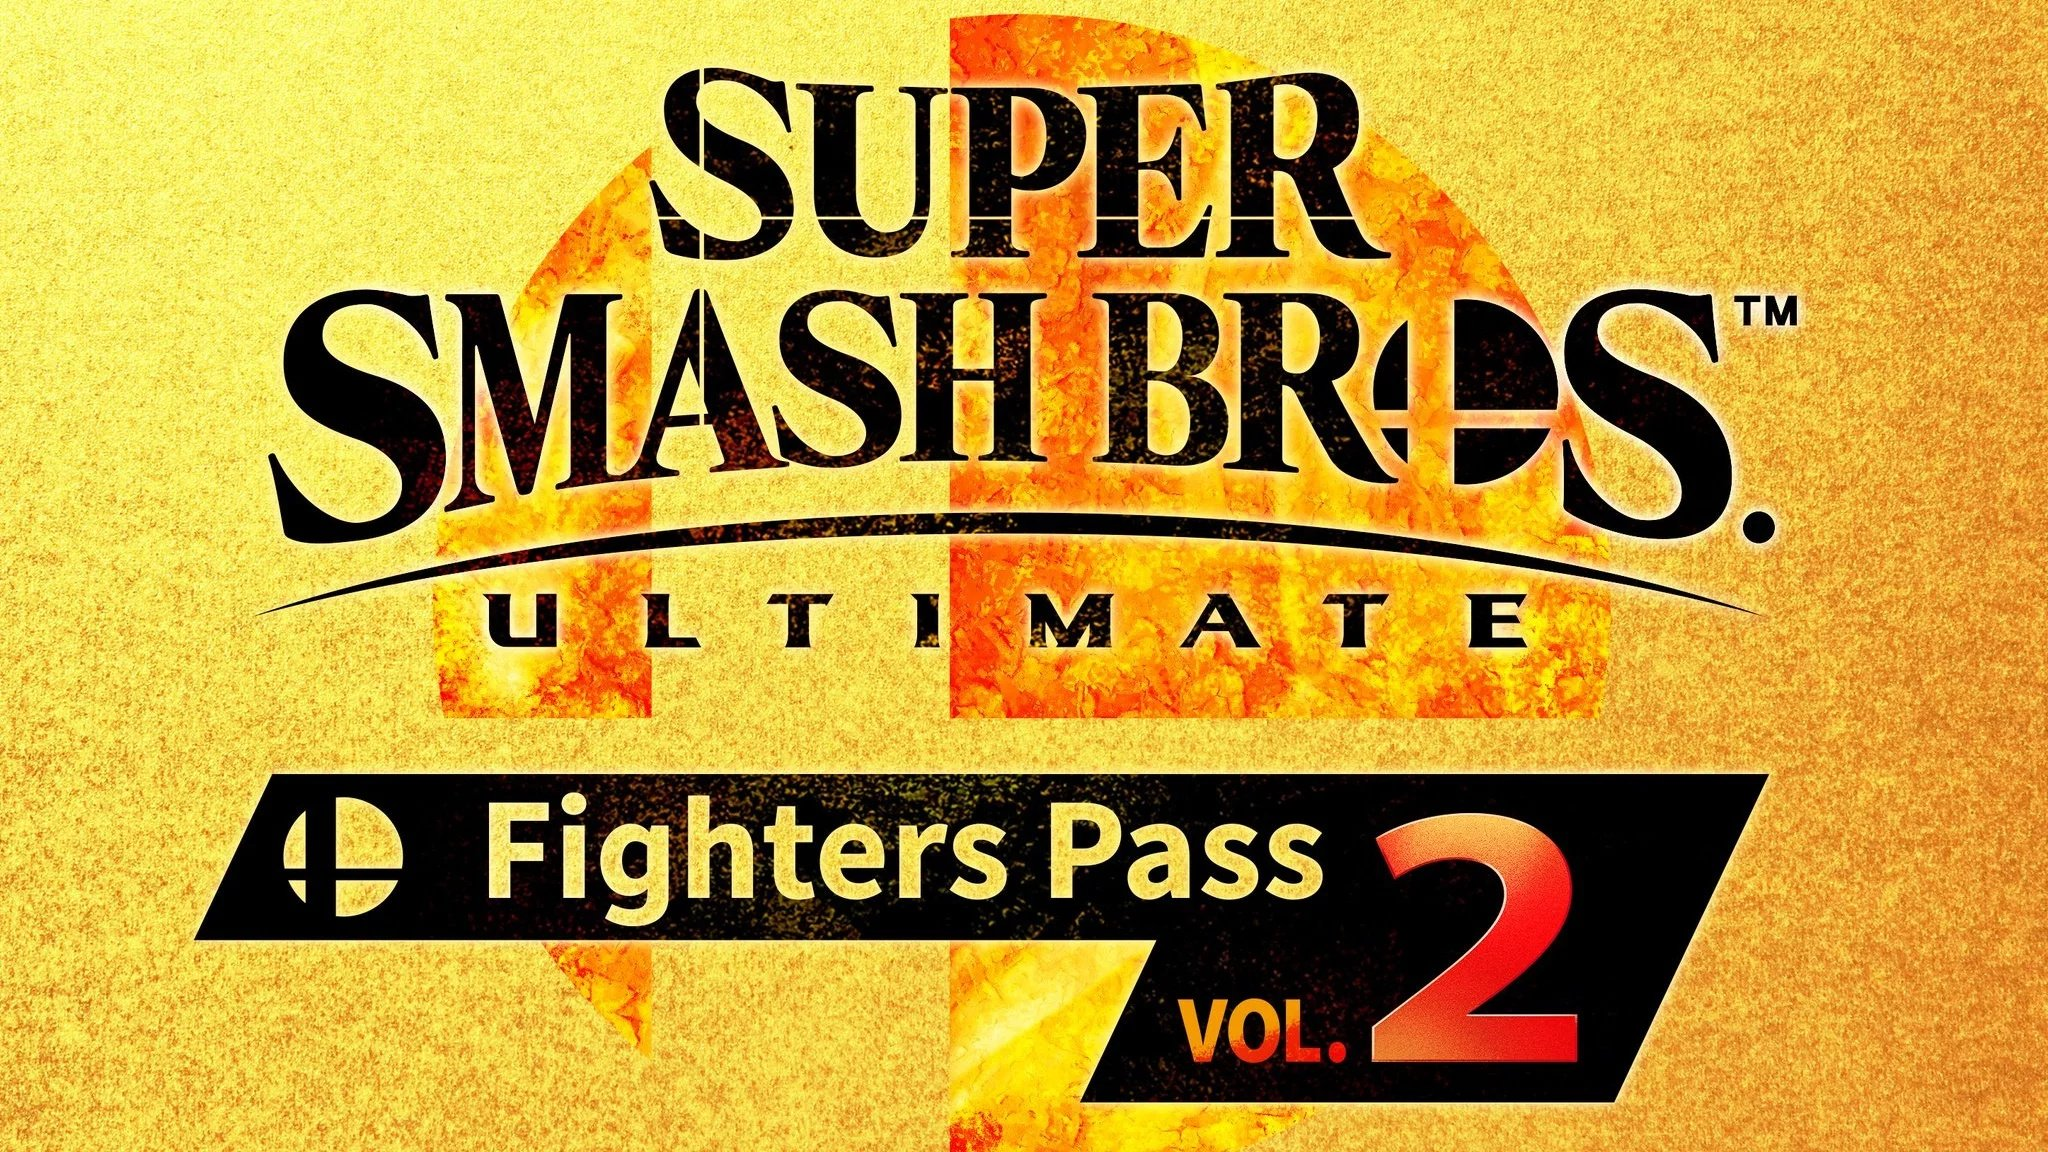 Super Smash Bros. Ultimate Fighters Pass Vol